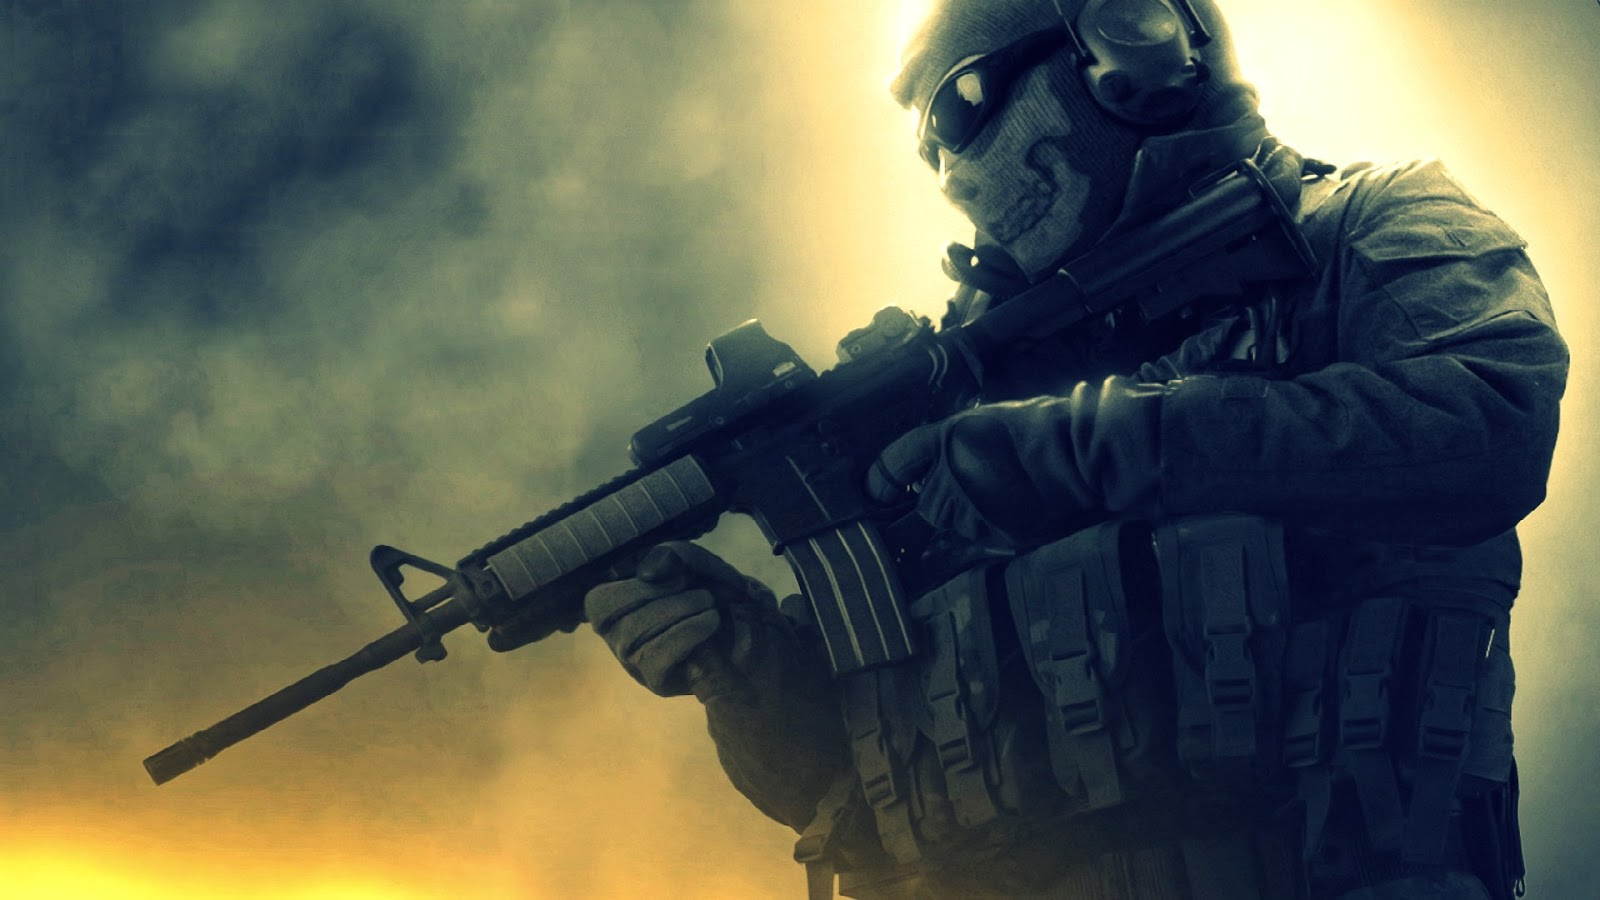 military soldier widescreen wallpapers hd and make your desktop cool 1600x900